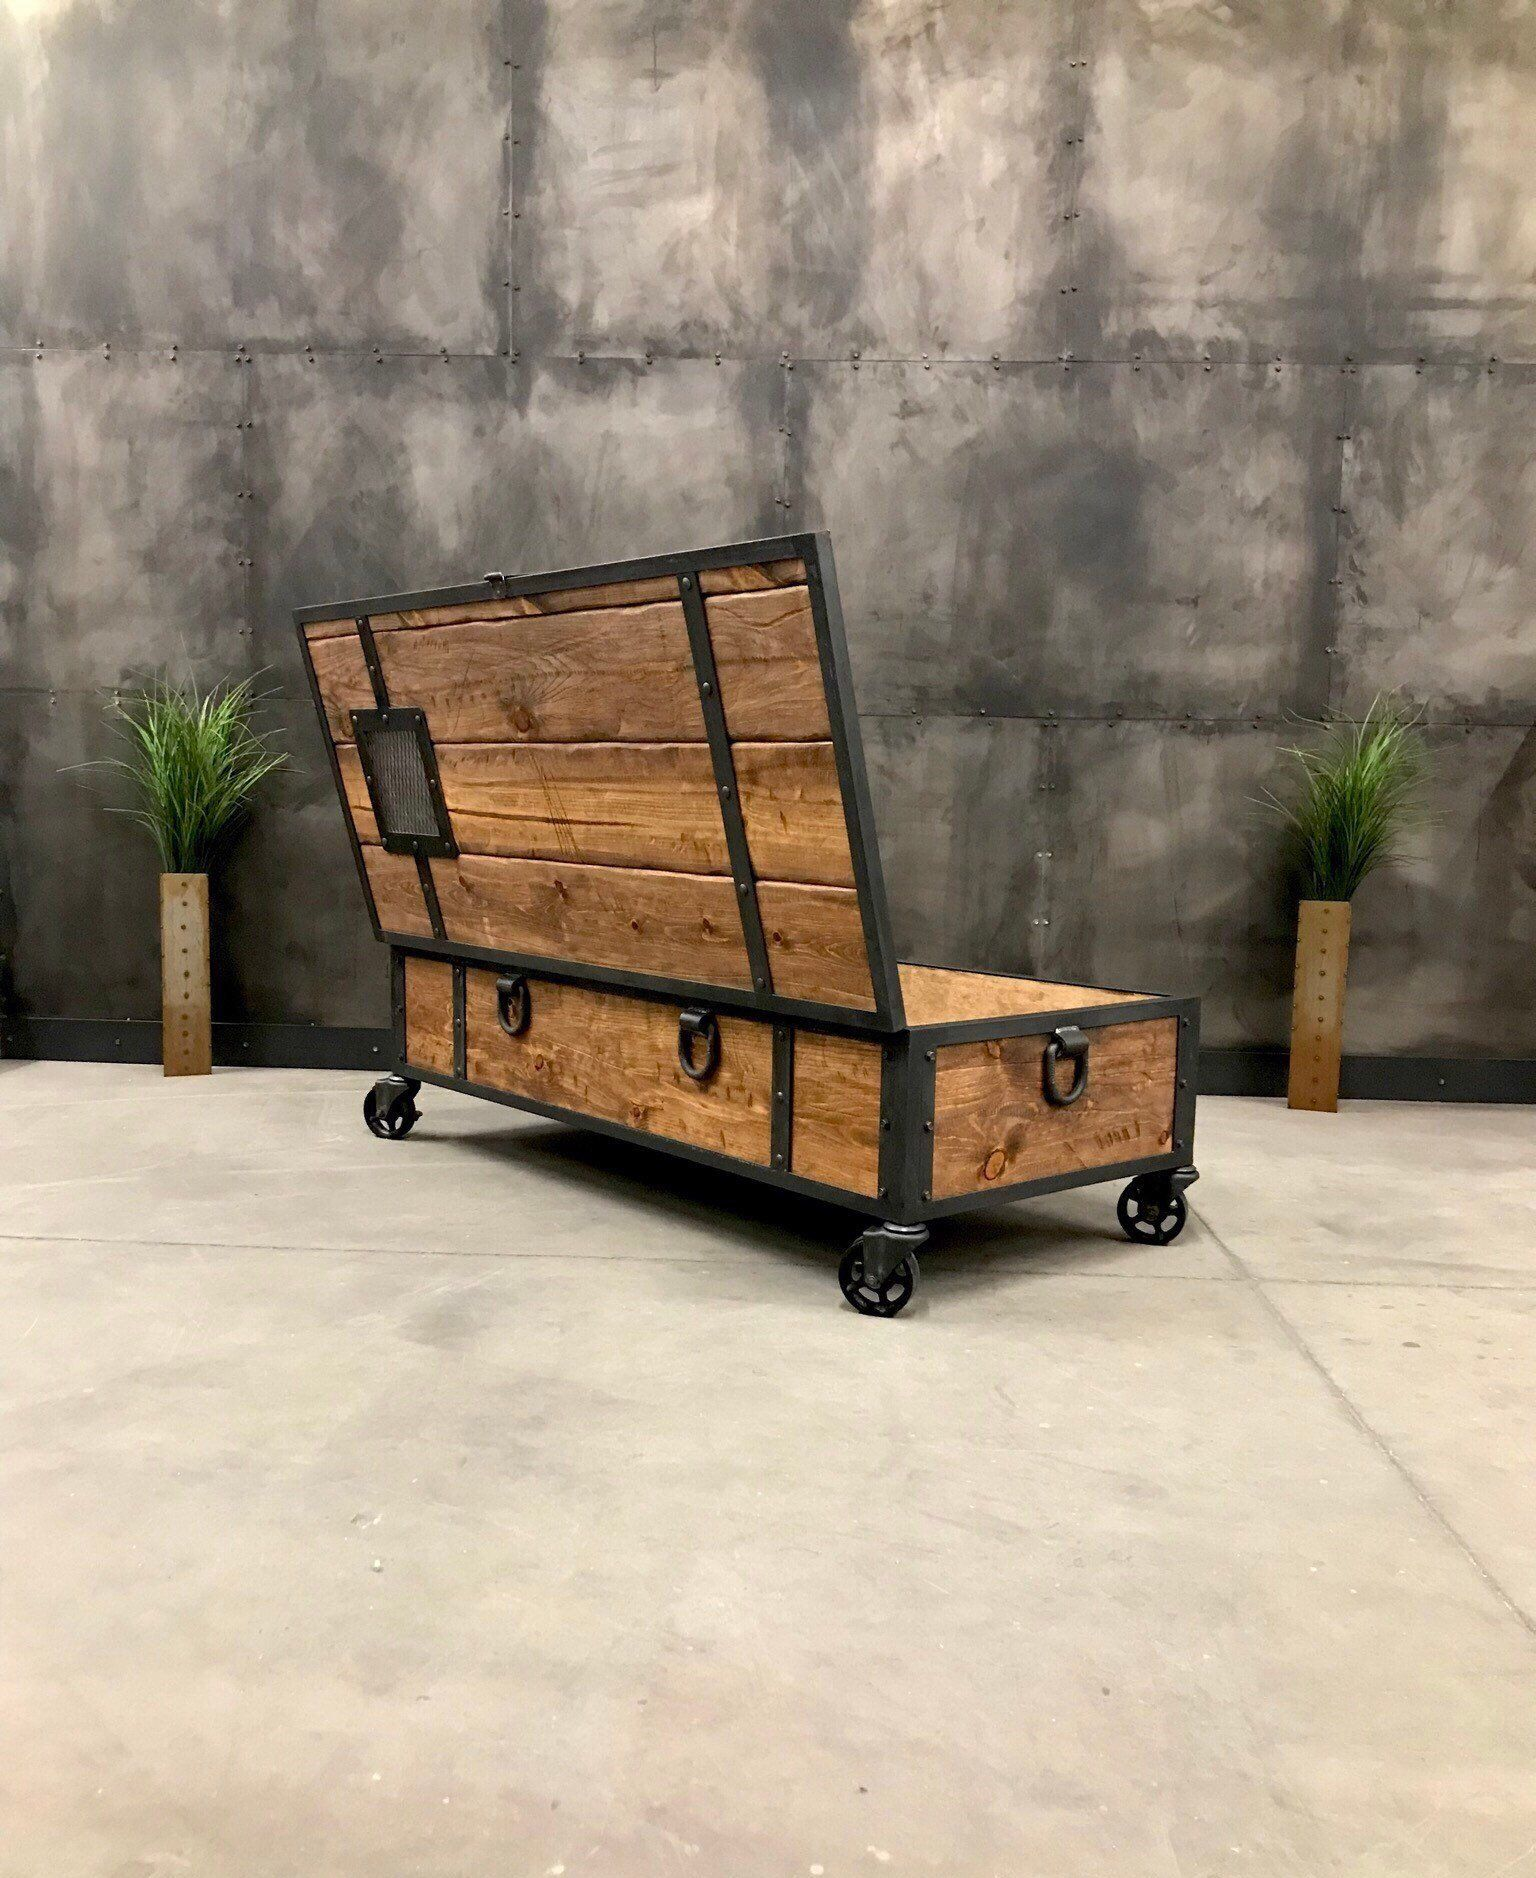 Industrial Locking Chest Rustic Coffee Table Storage Bench Coffee Table With Wheels Wood Coffee Table Rustic Rustic Chest